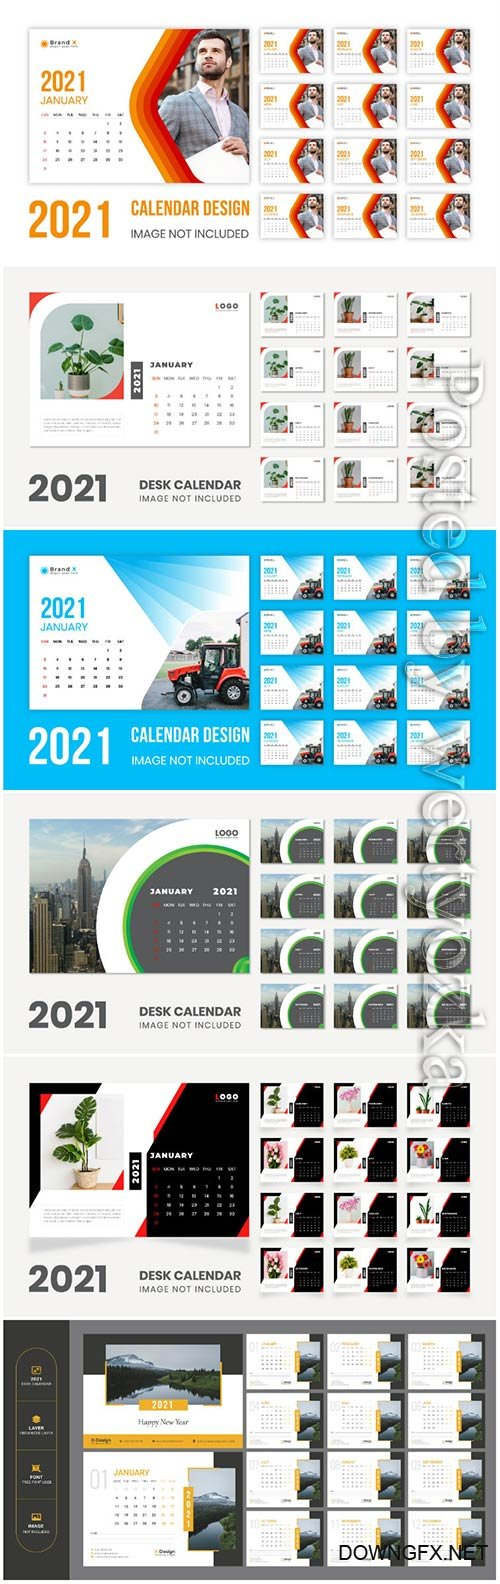 Desk calendar new year 2021